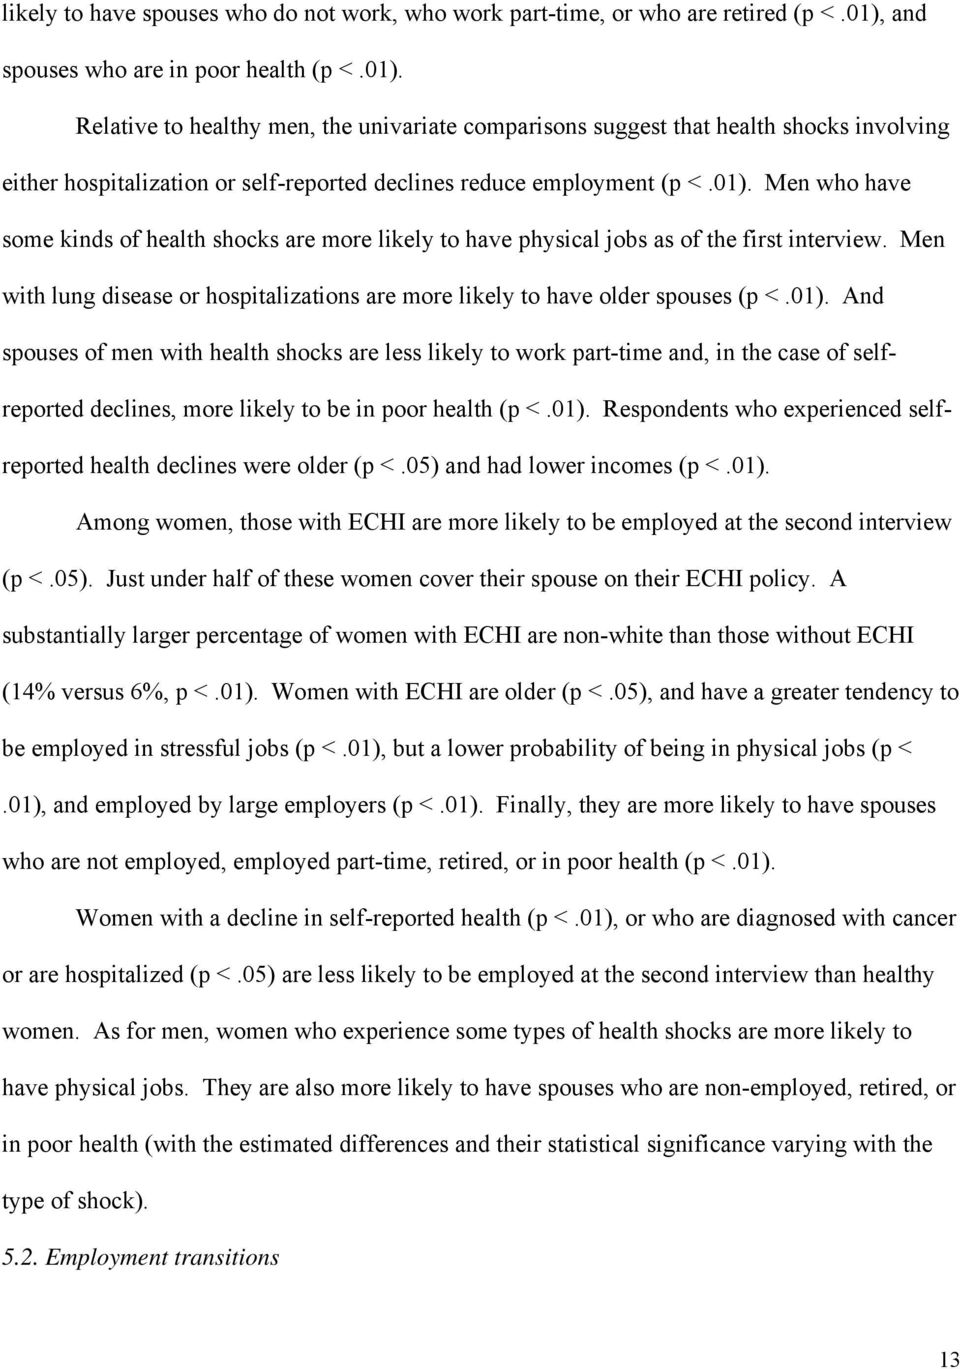 Relative to healthy men, the univariate comparisons suggest that health shocks involving either hospitalization or self-reported declines reduce employment (p <.01).